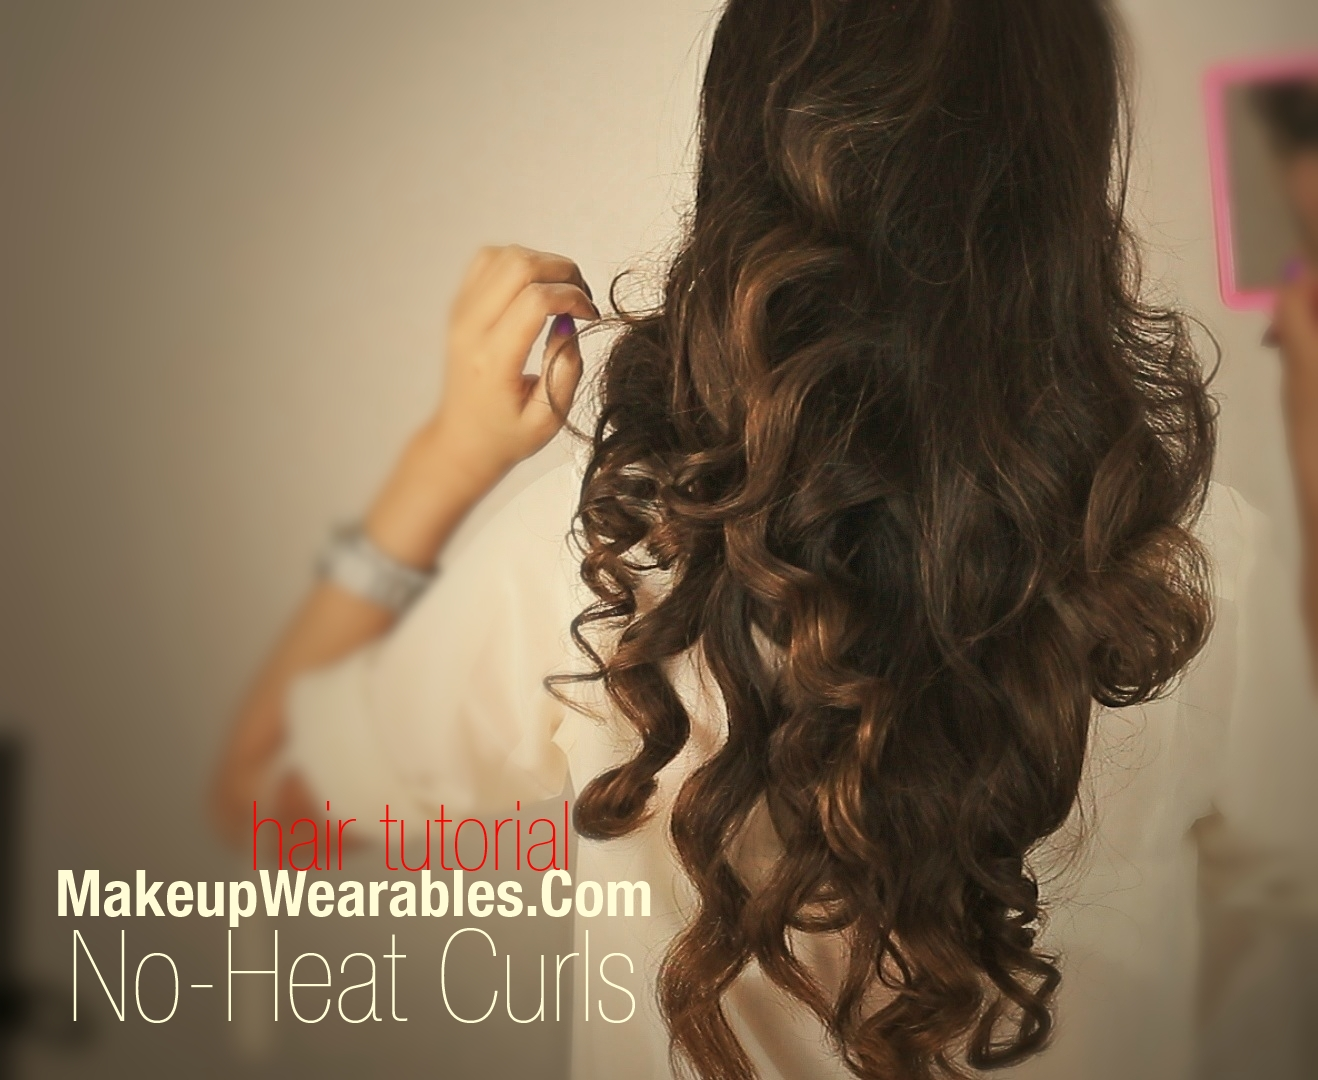 Kim Kardashian Hairstyles, How to No-Heat Curls | Hair Tutorial Video